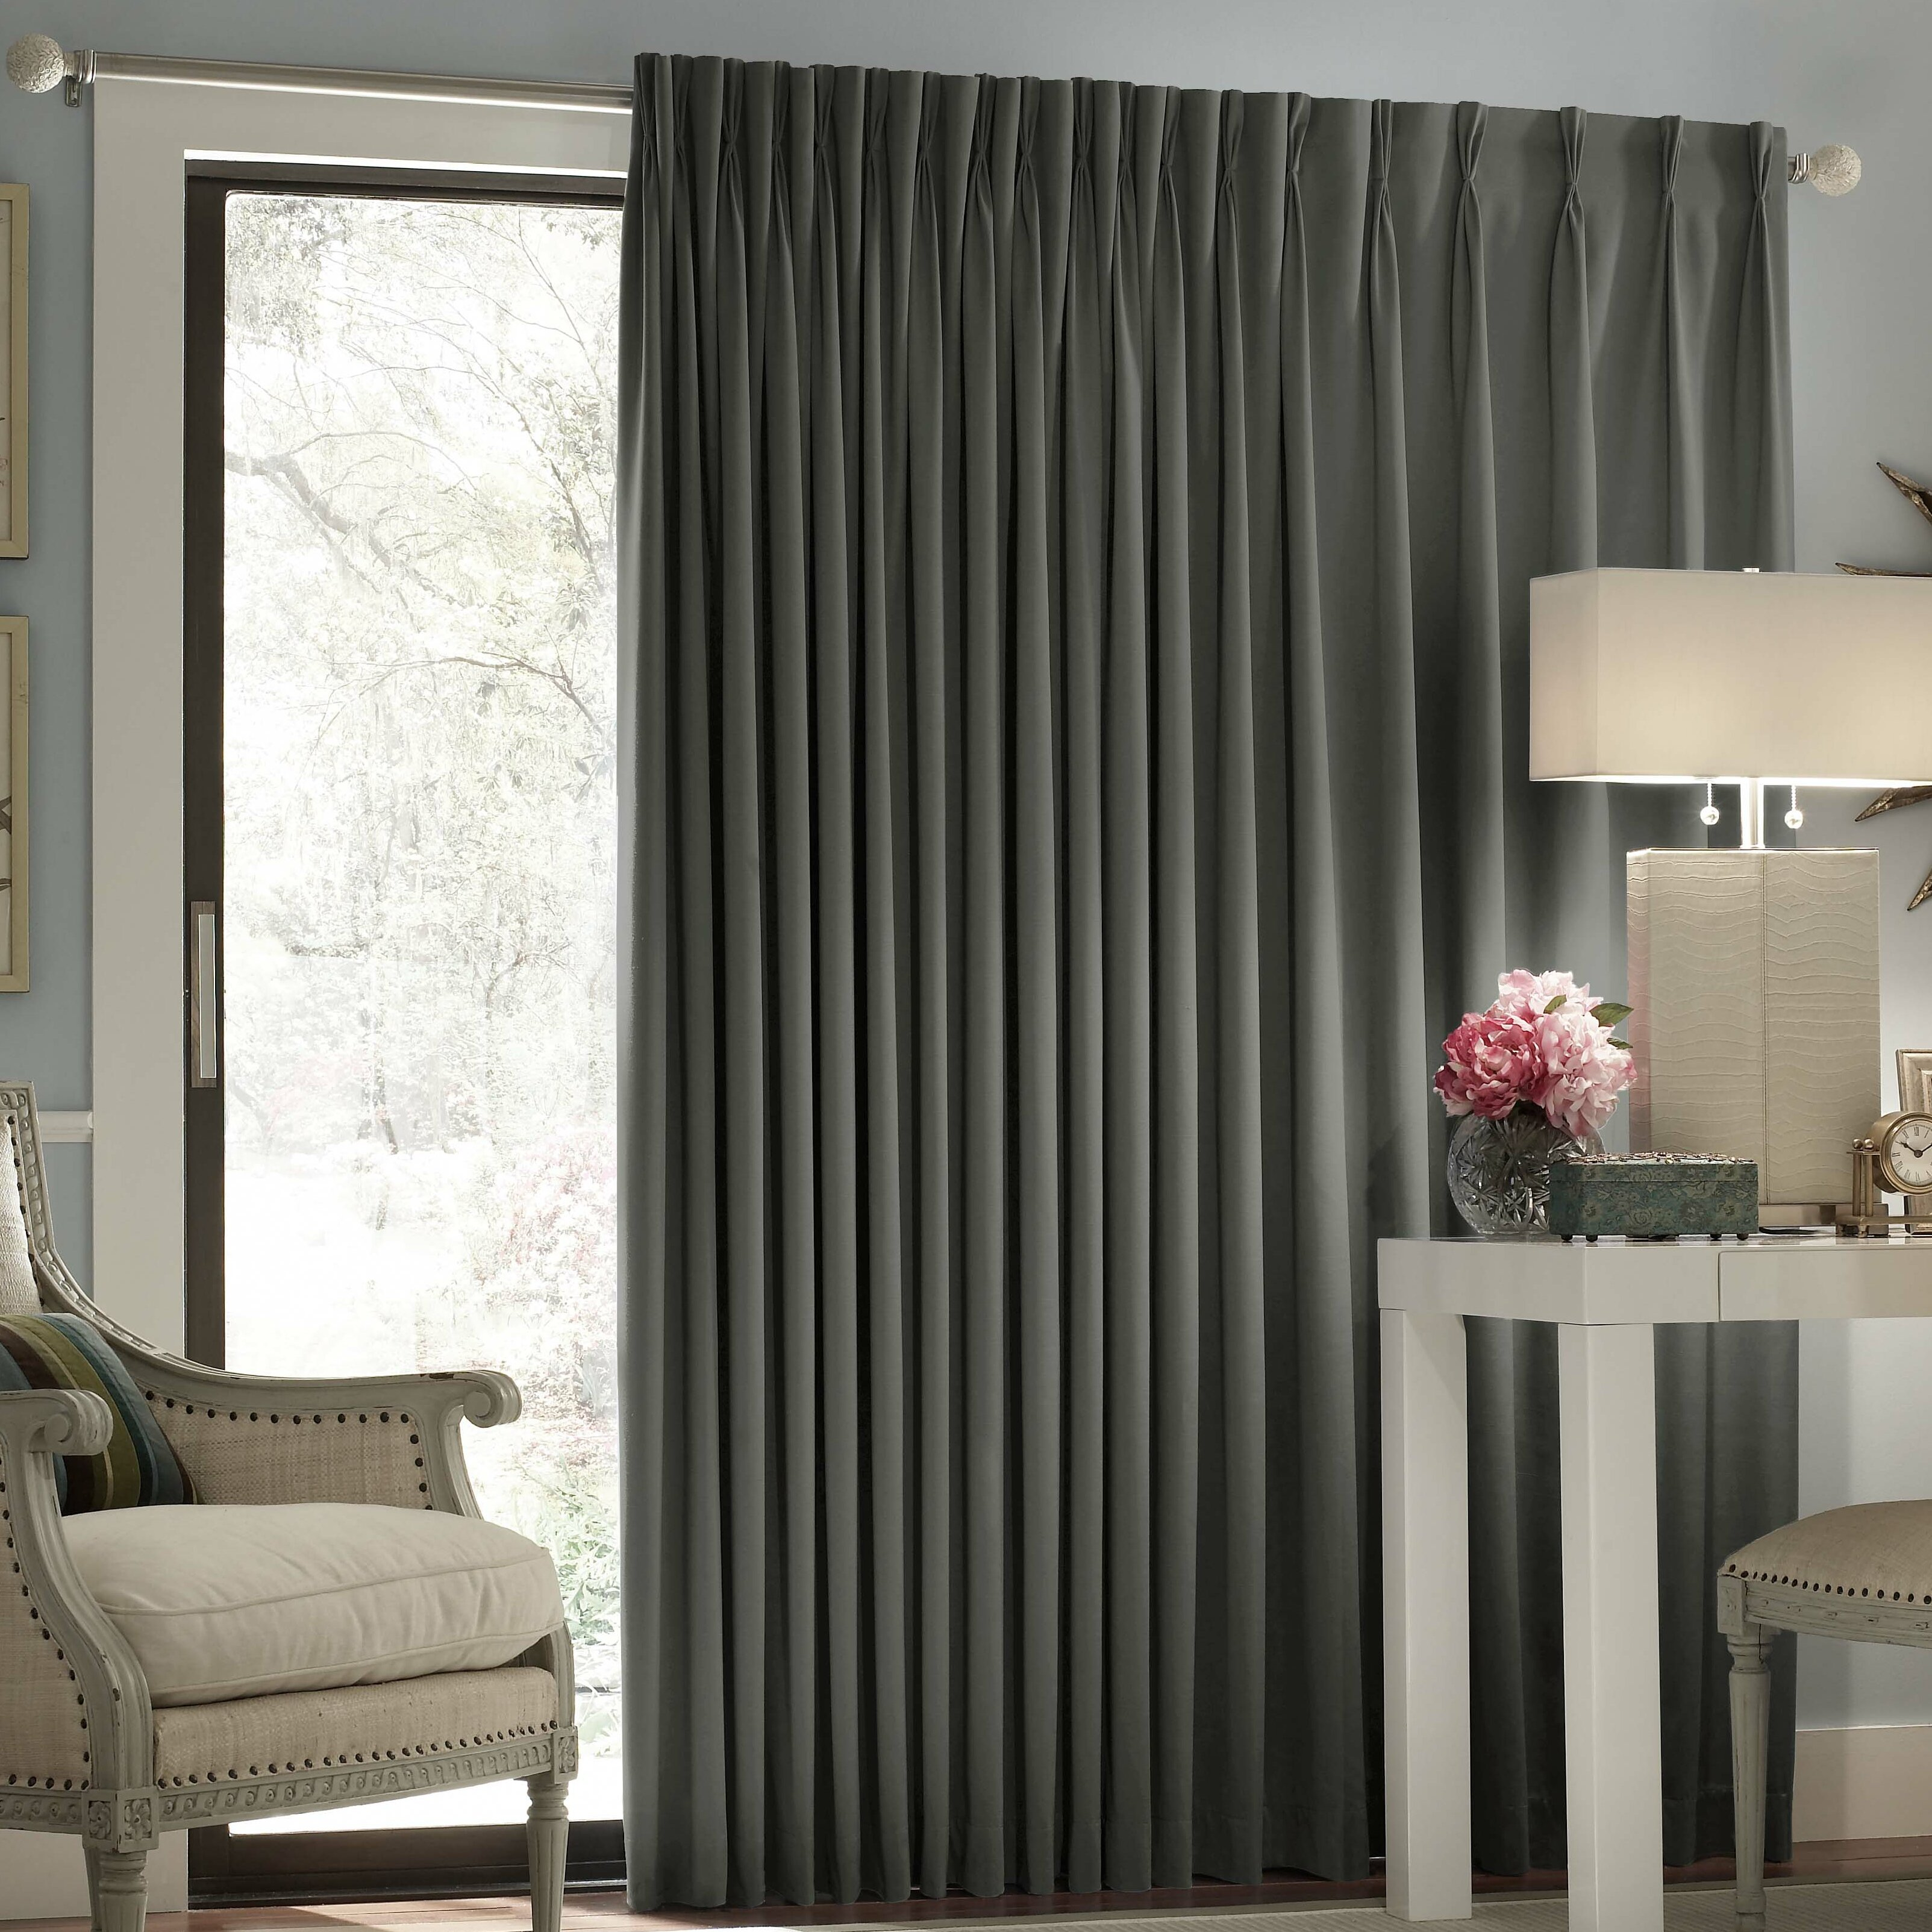 darby home co ashville patio door blackout single curtain